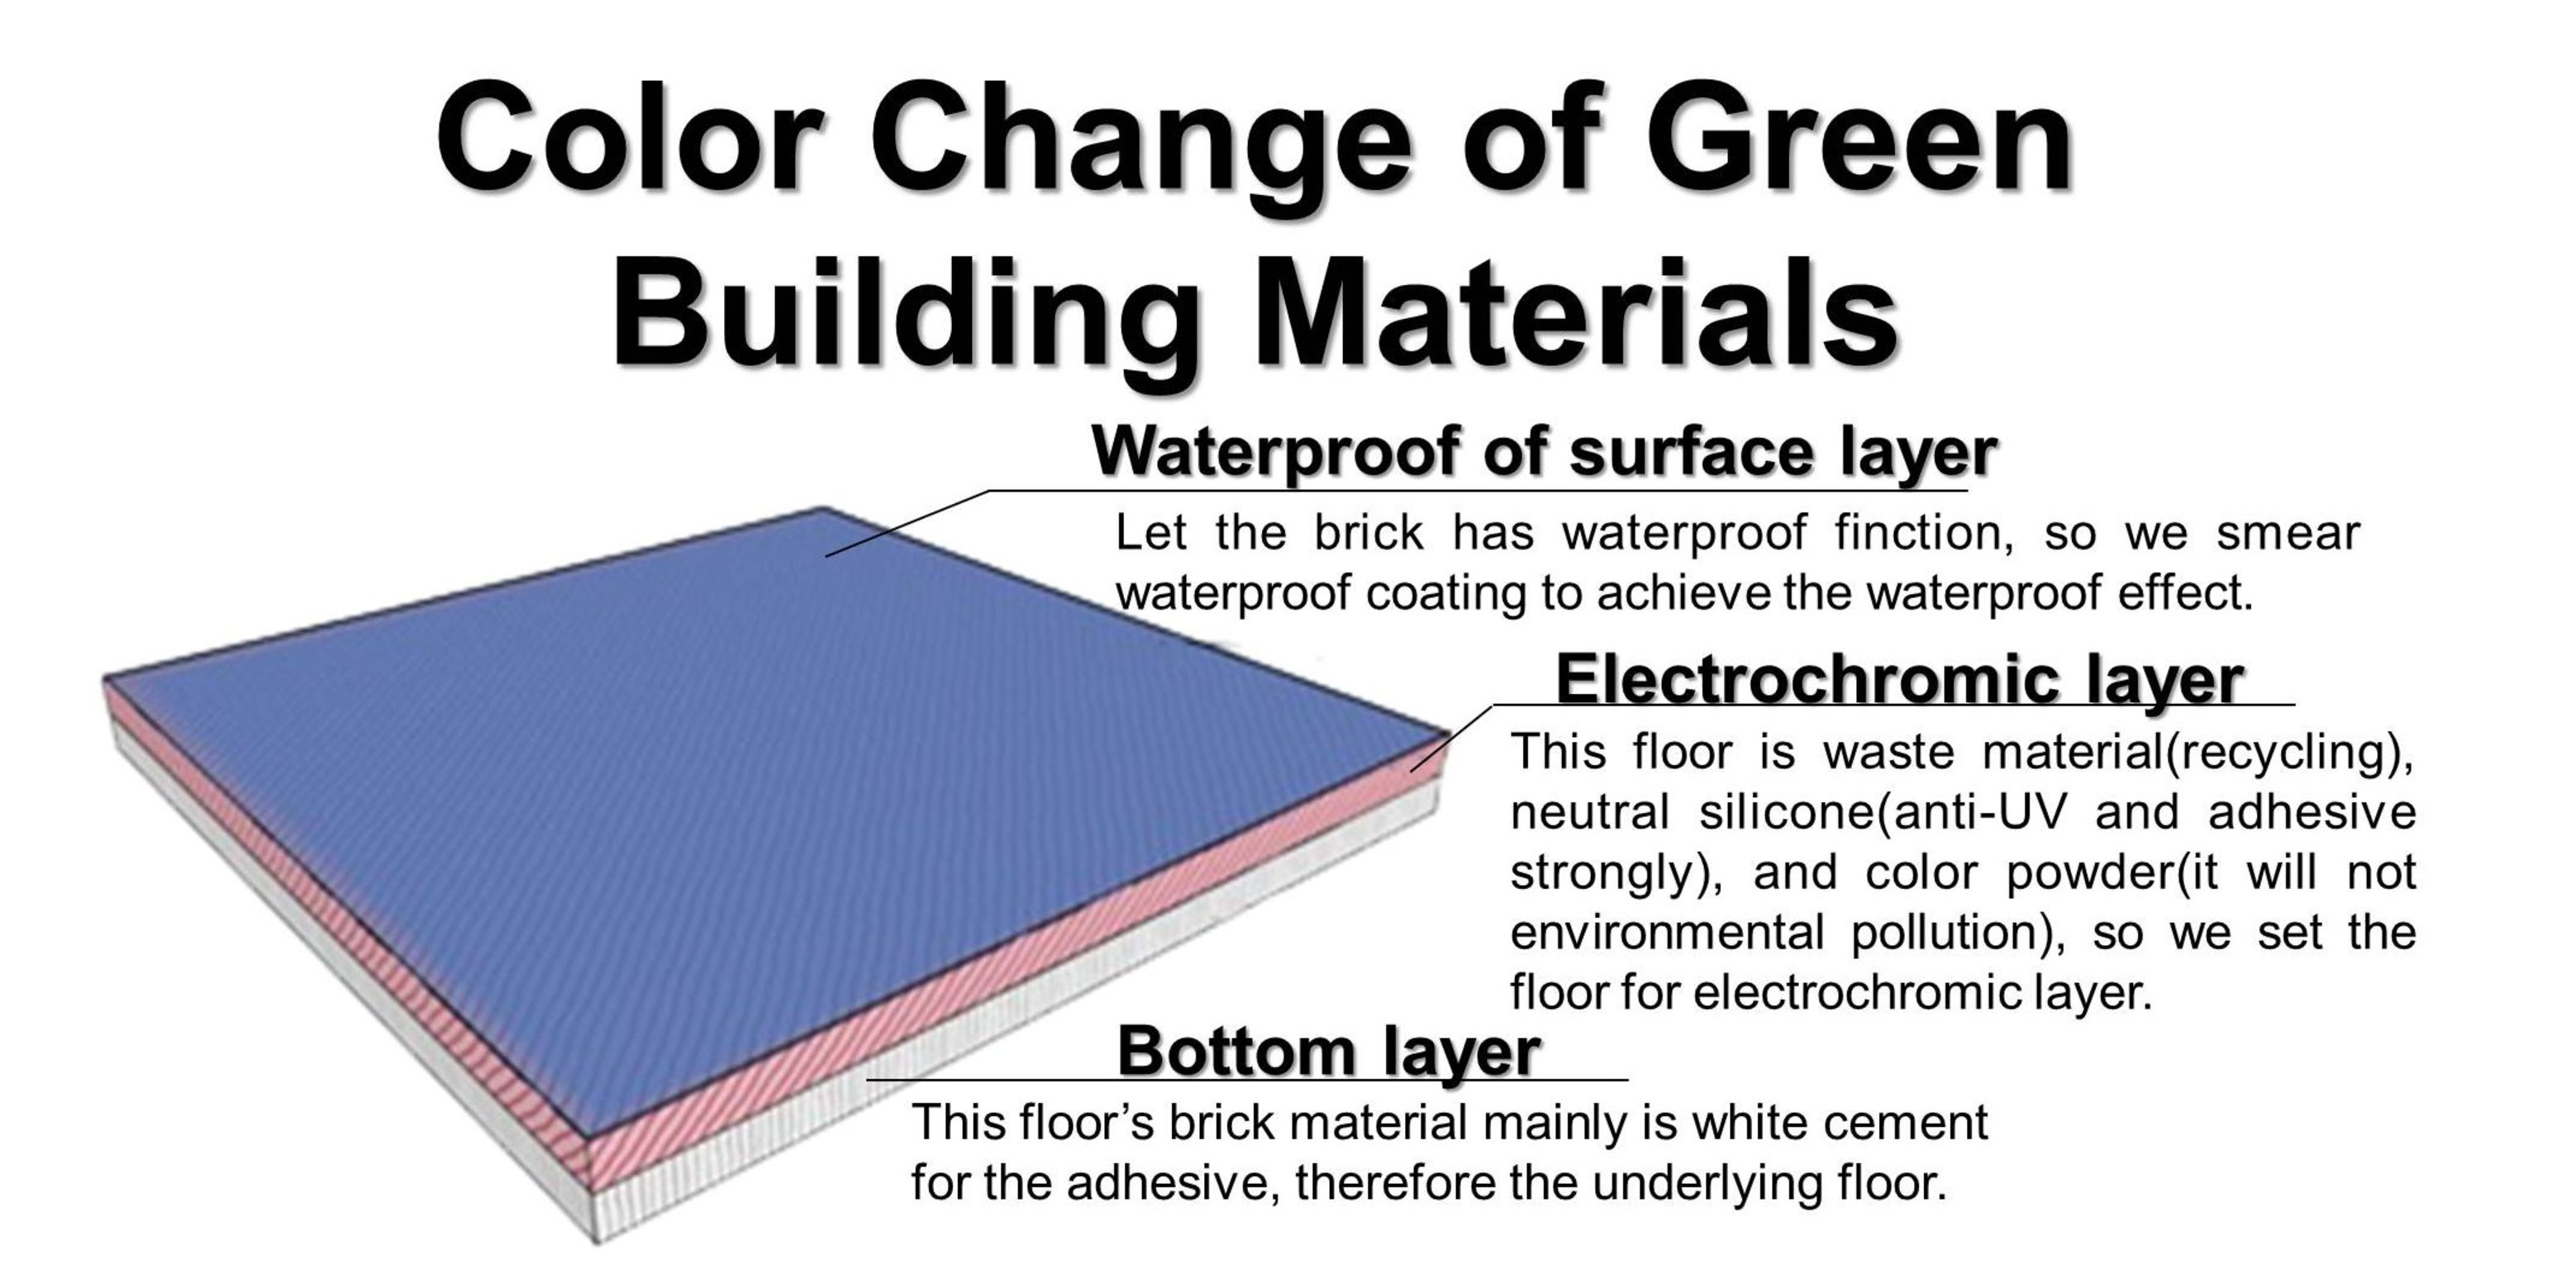 Discolor green materials entry if world design guide for Sustainable roofing materials